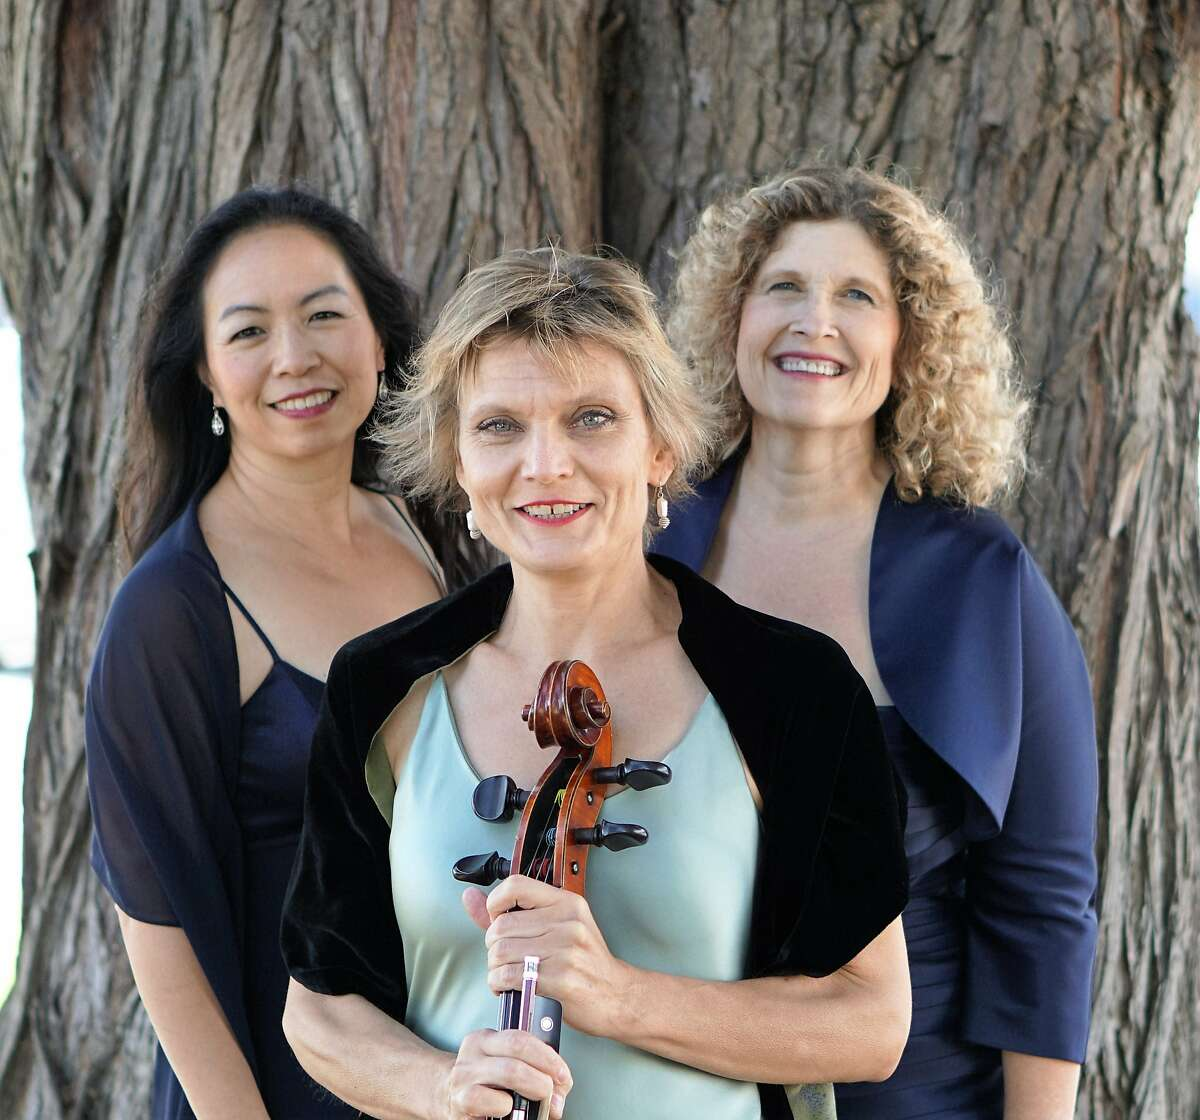 Ensemble for These Times performs Sunday (June 4) at Old First Church in San Francisco